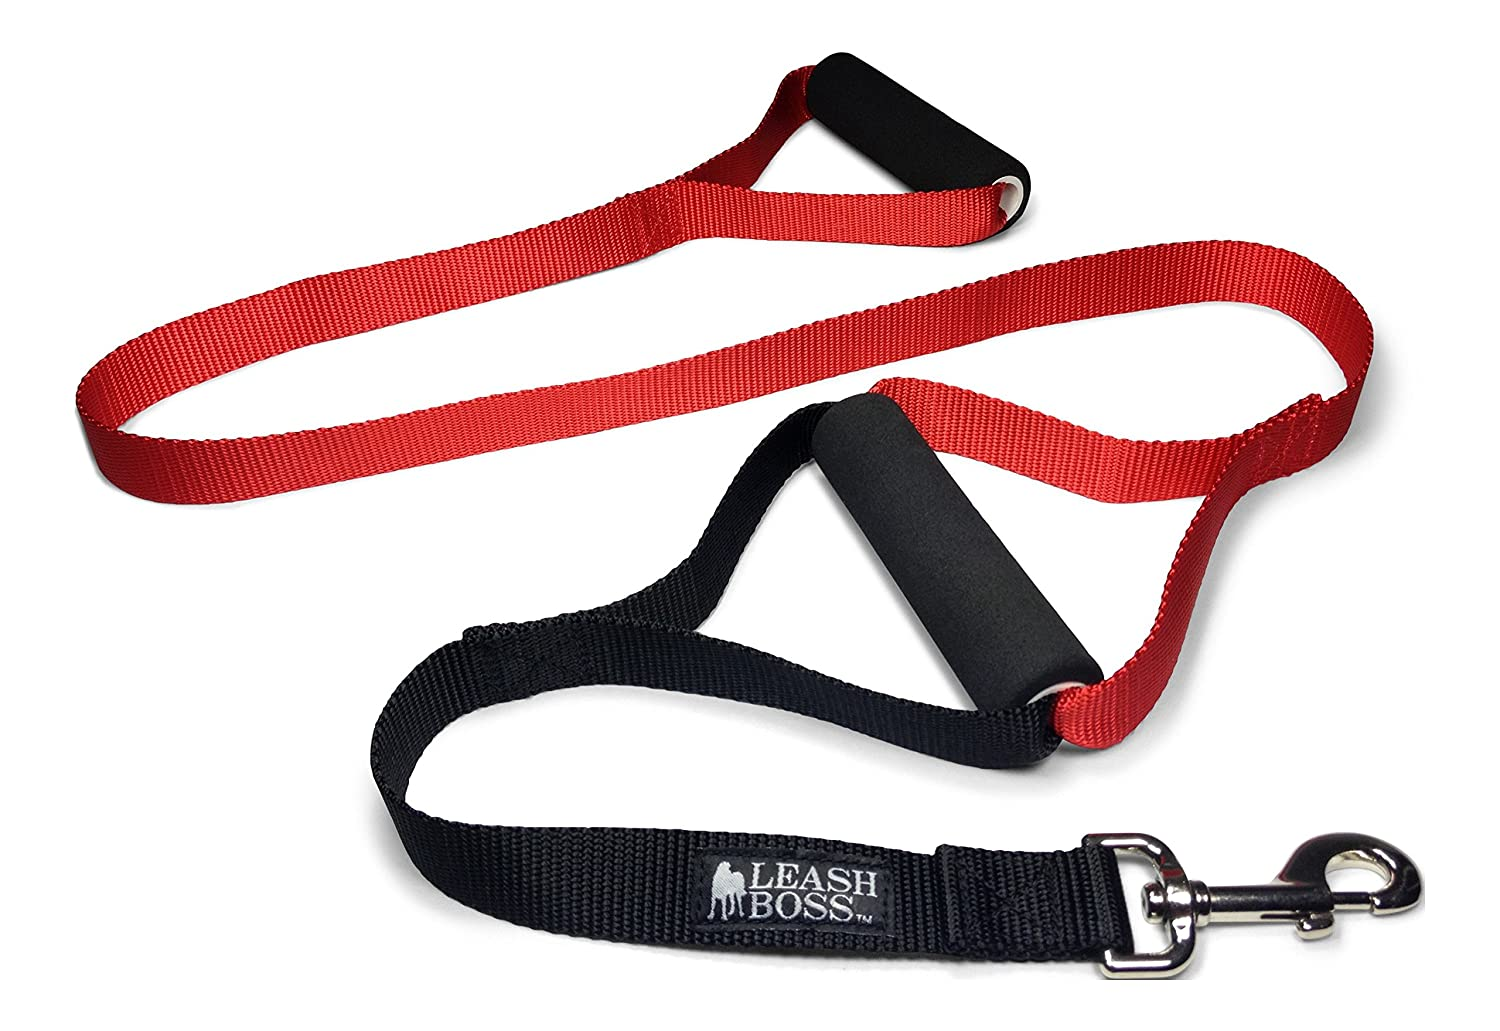 New Red Leashboss Original Heavy Duty Dog Leash for Large Dogs No Pull Double Handle Training Lead for Walking Big Dogs (New Red)